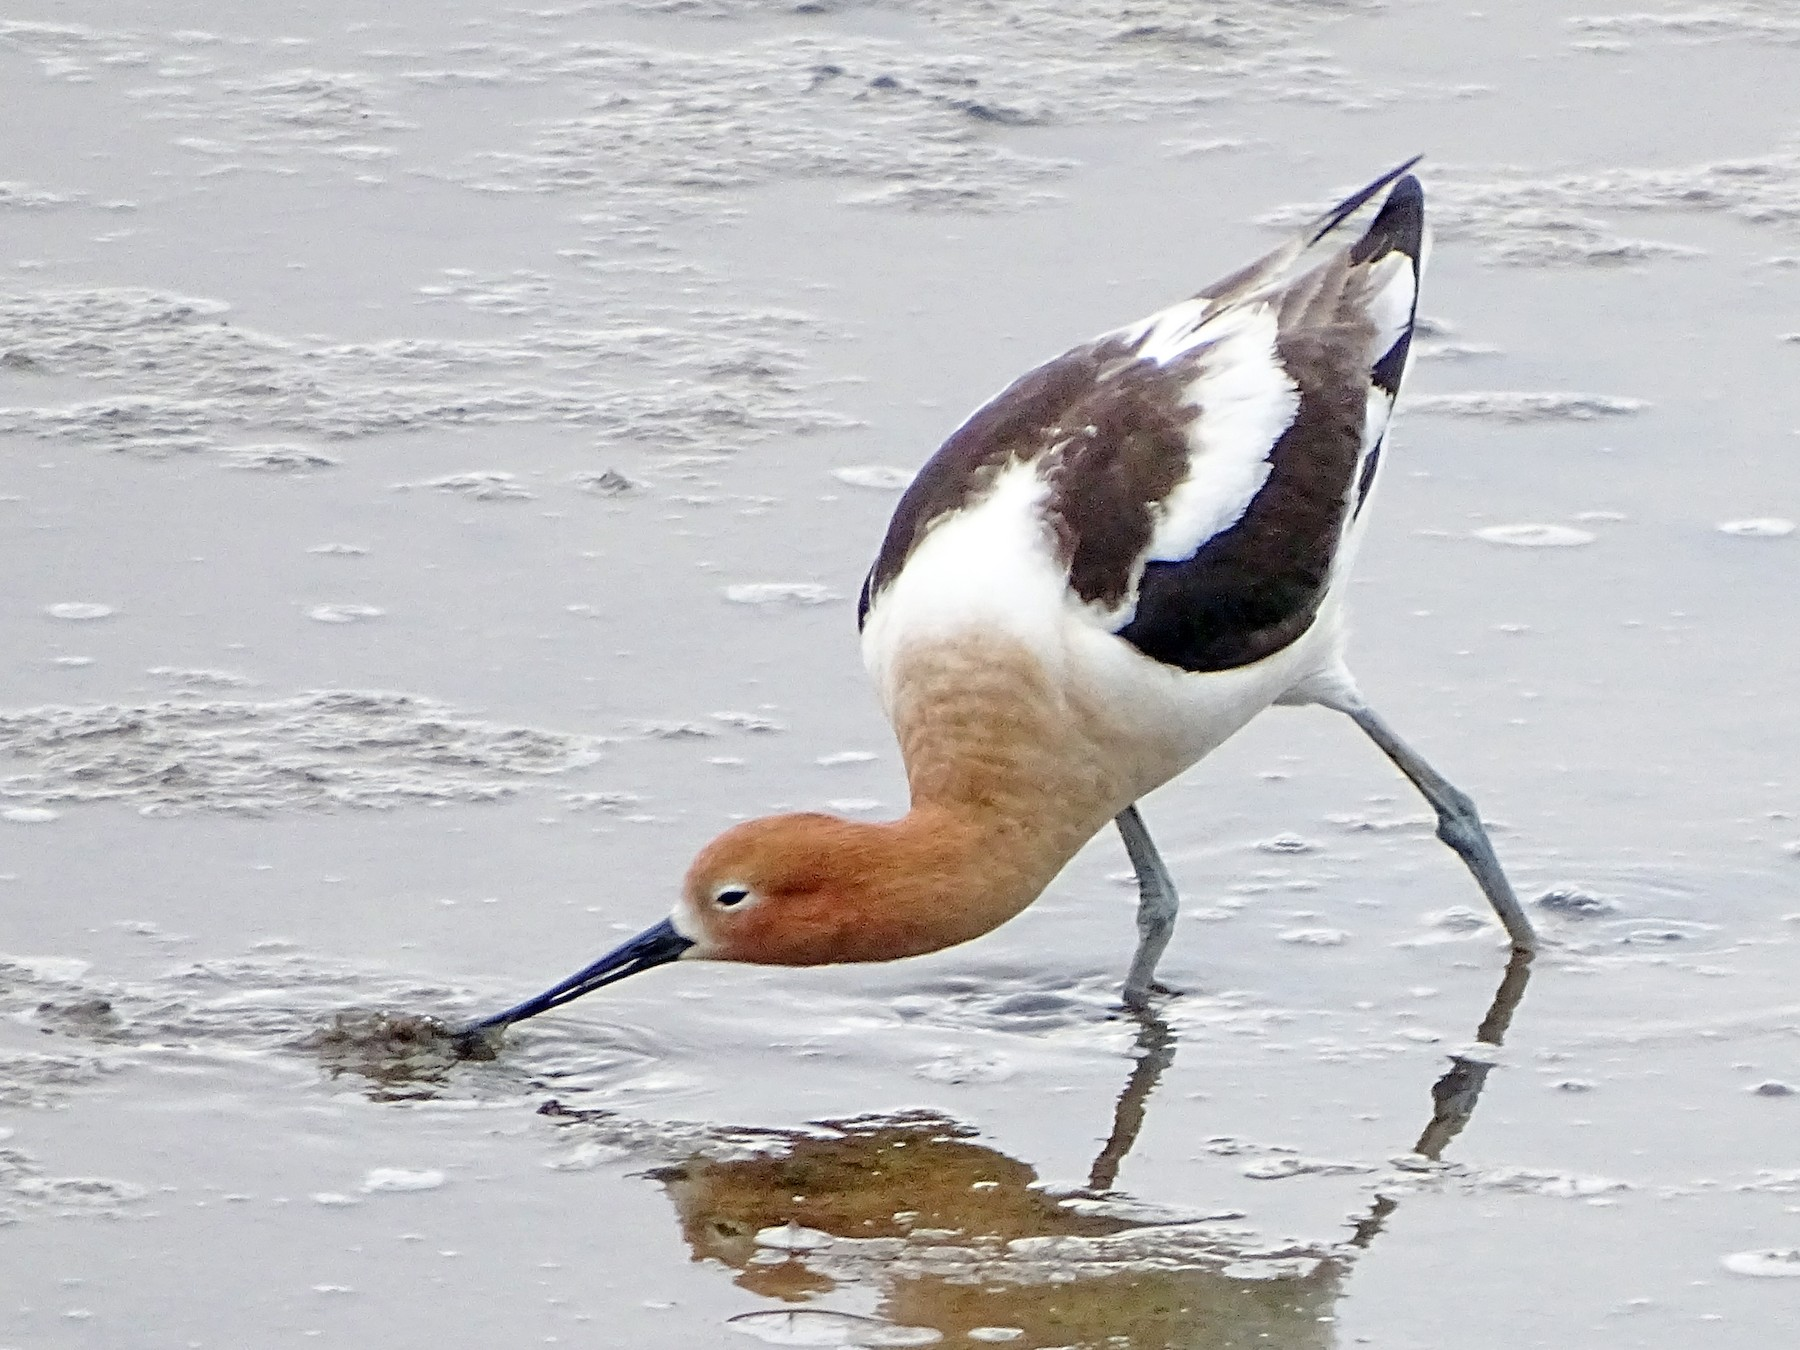 American Avocet - Paul Barchilon